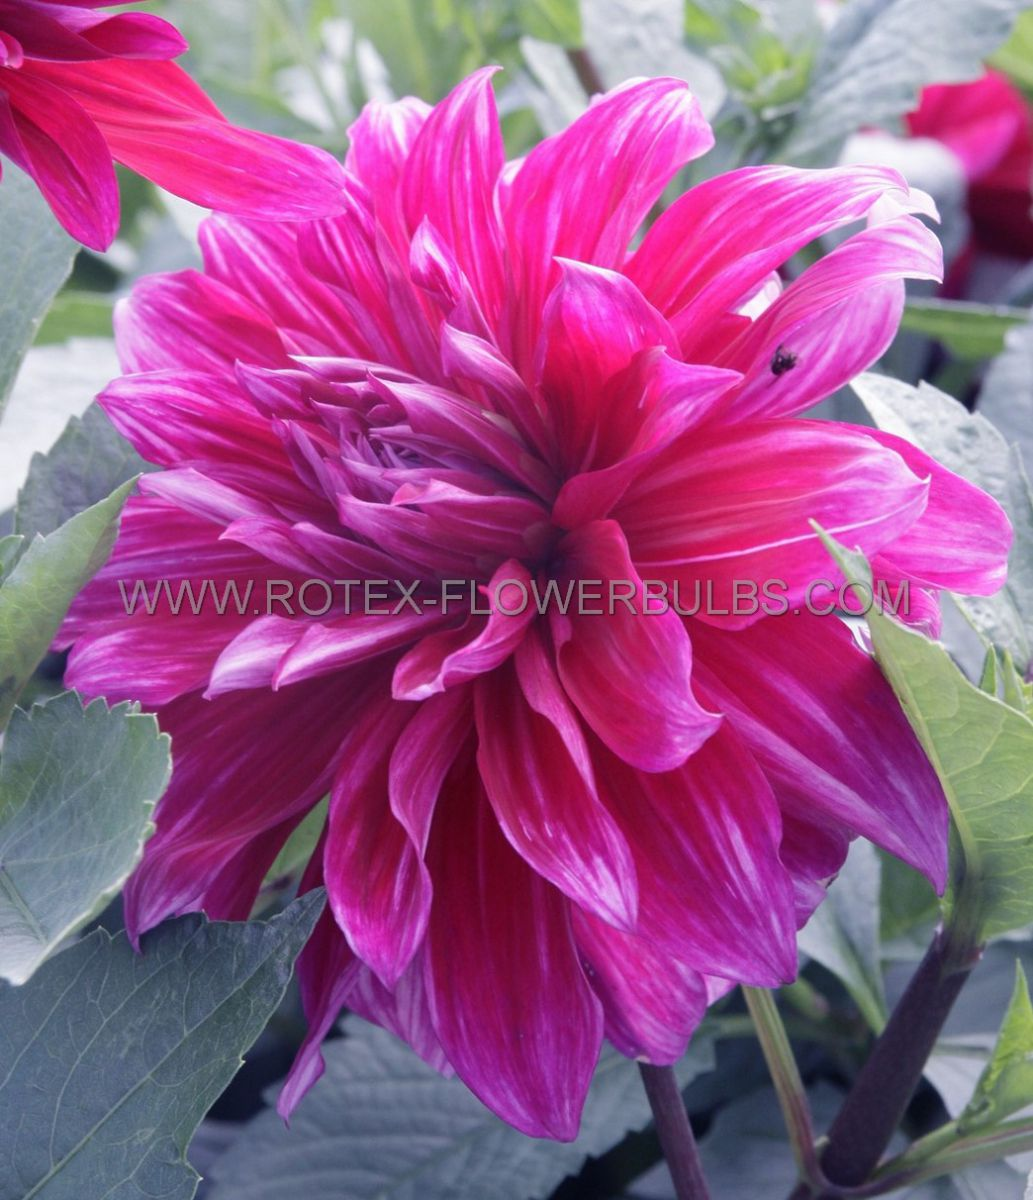 dahlia decorative babylon purple i 25 pcarton